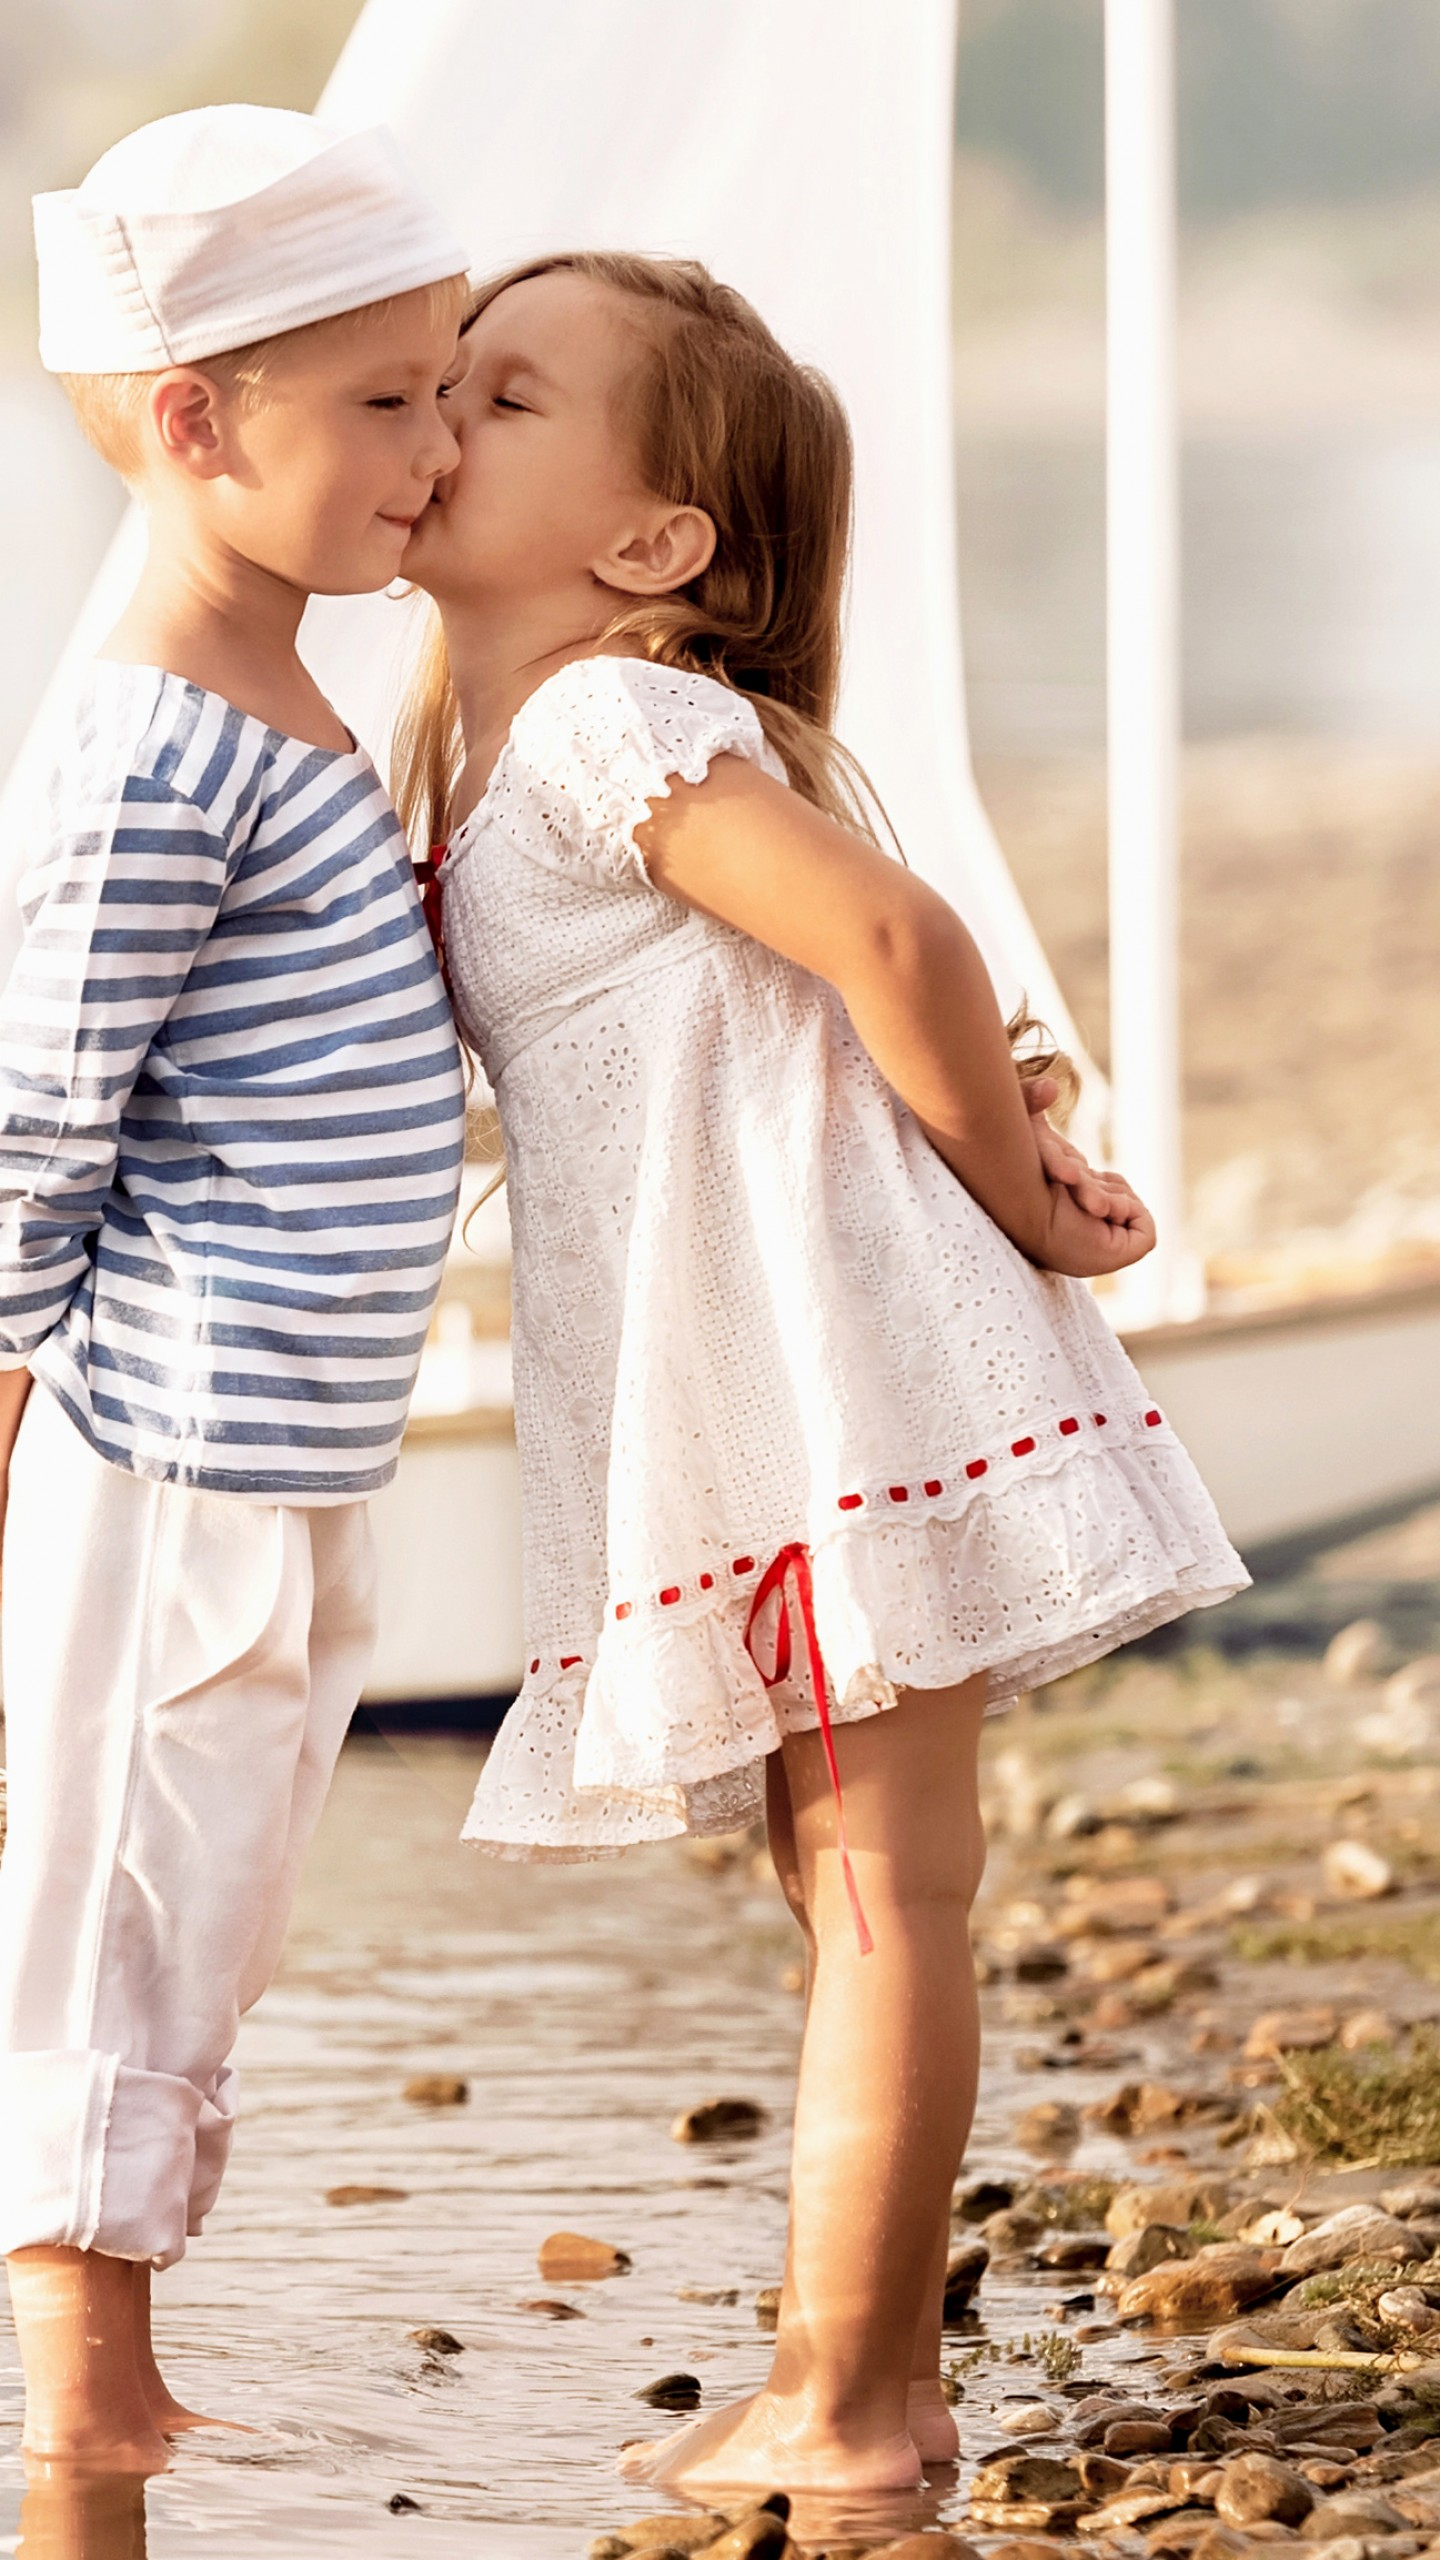 Cute Baby Kiss Hd Wallpaper Posted By Zoey Walker